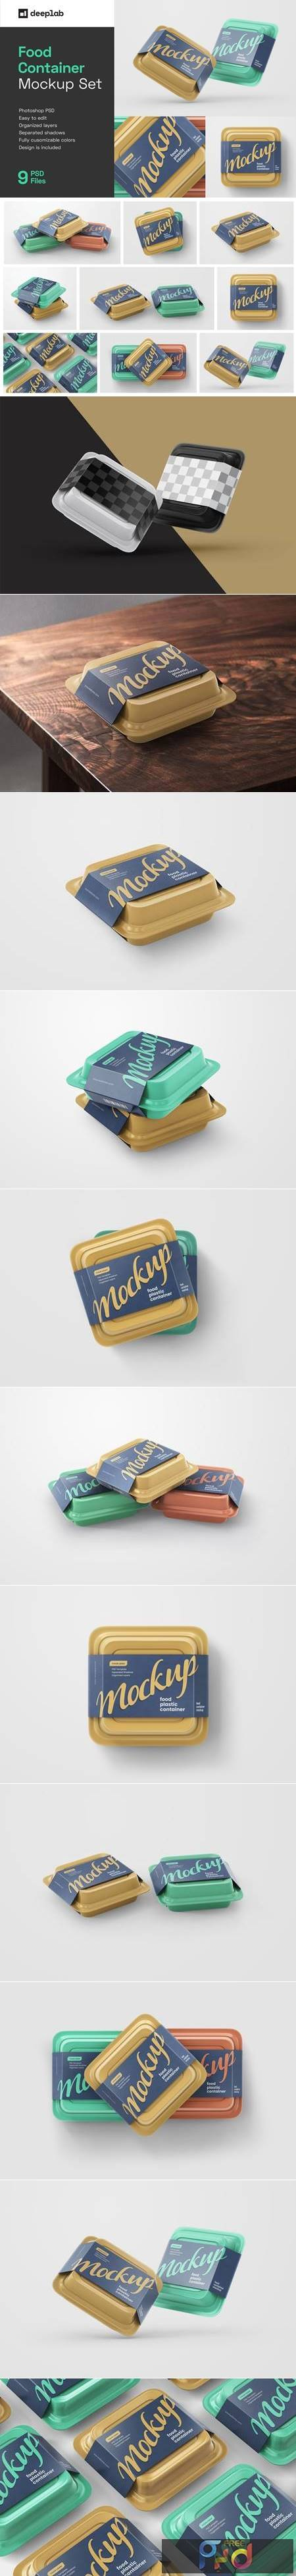 Plastic Food Container Mockup Set 5548996 1